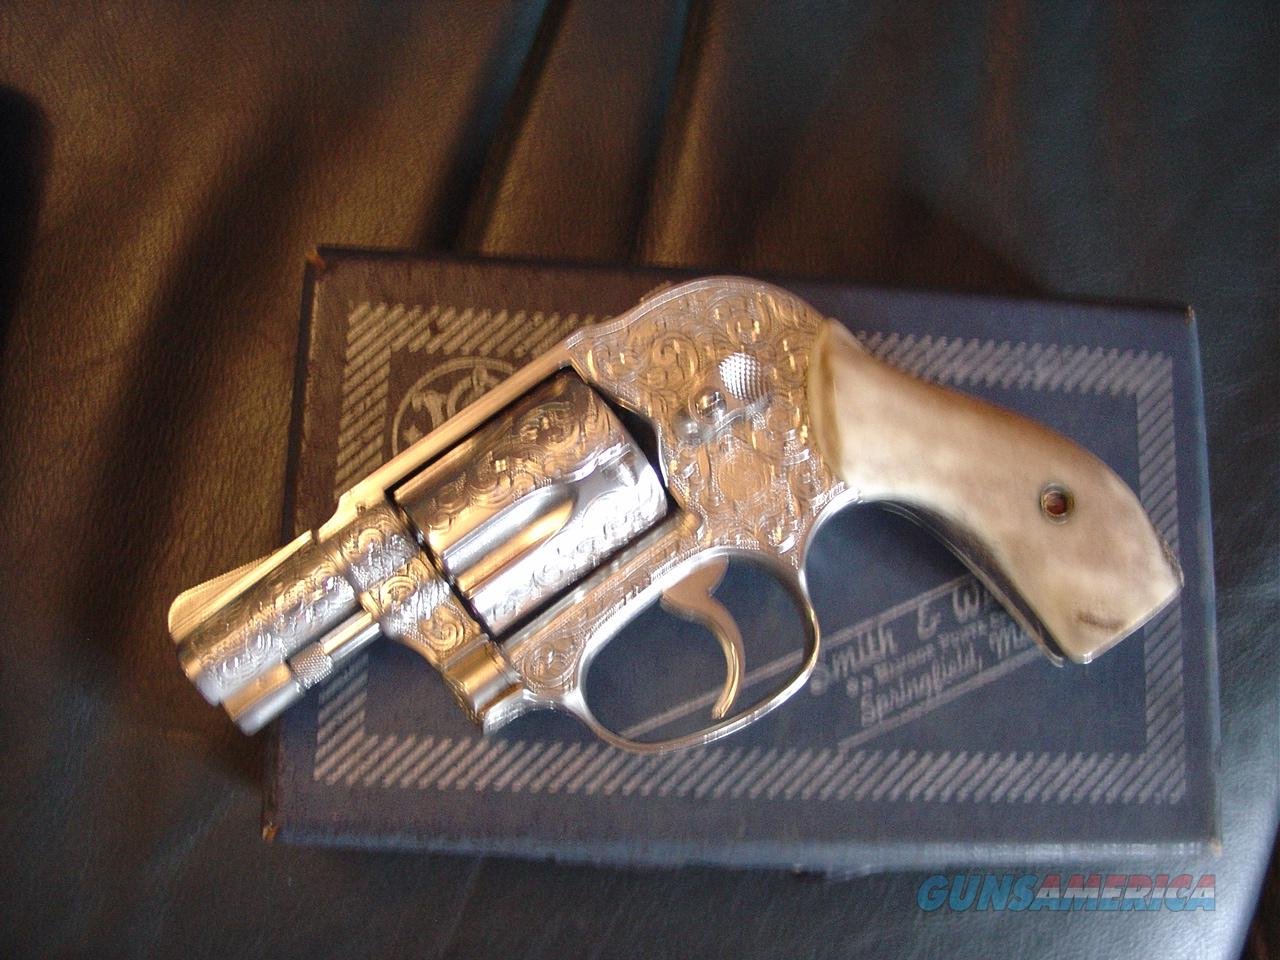 Smith & Wesson Model 49 no dash,fully deep scroll engraved,Stag grips,1  3/4